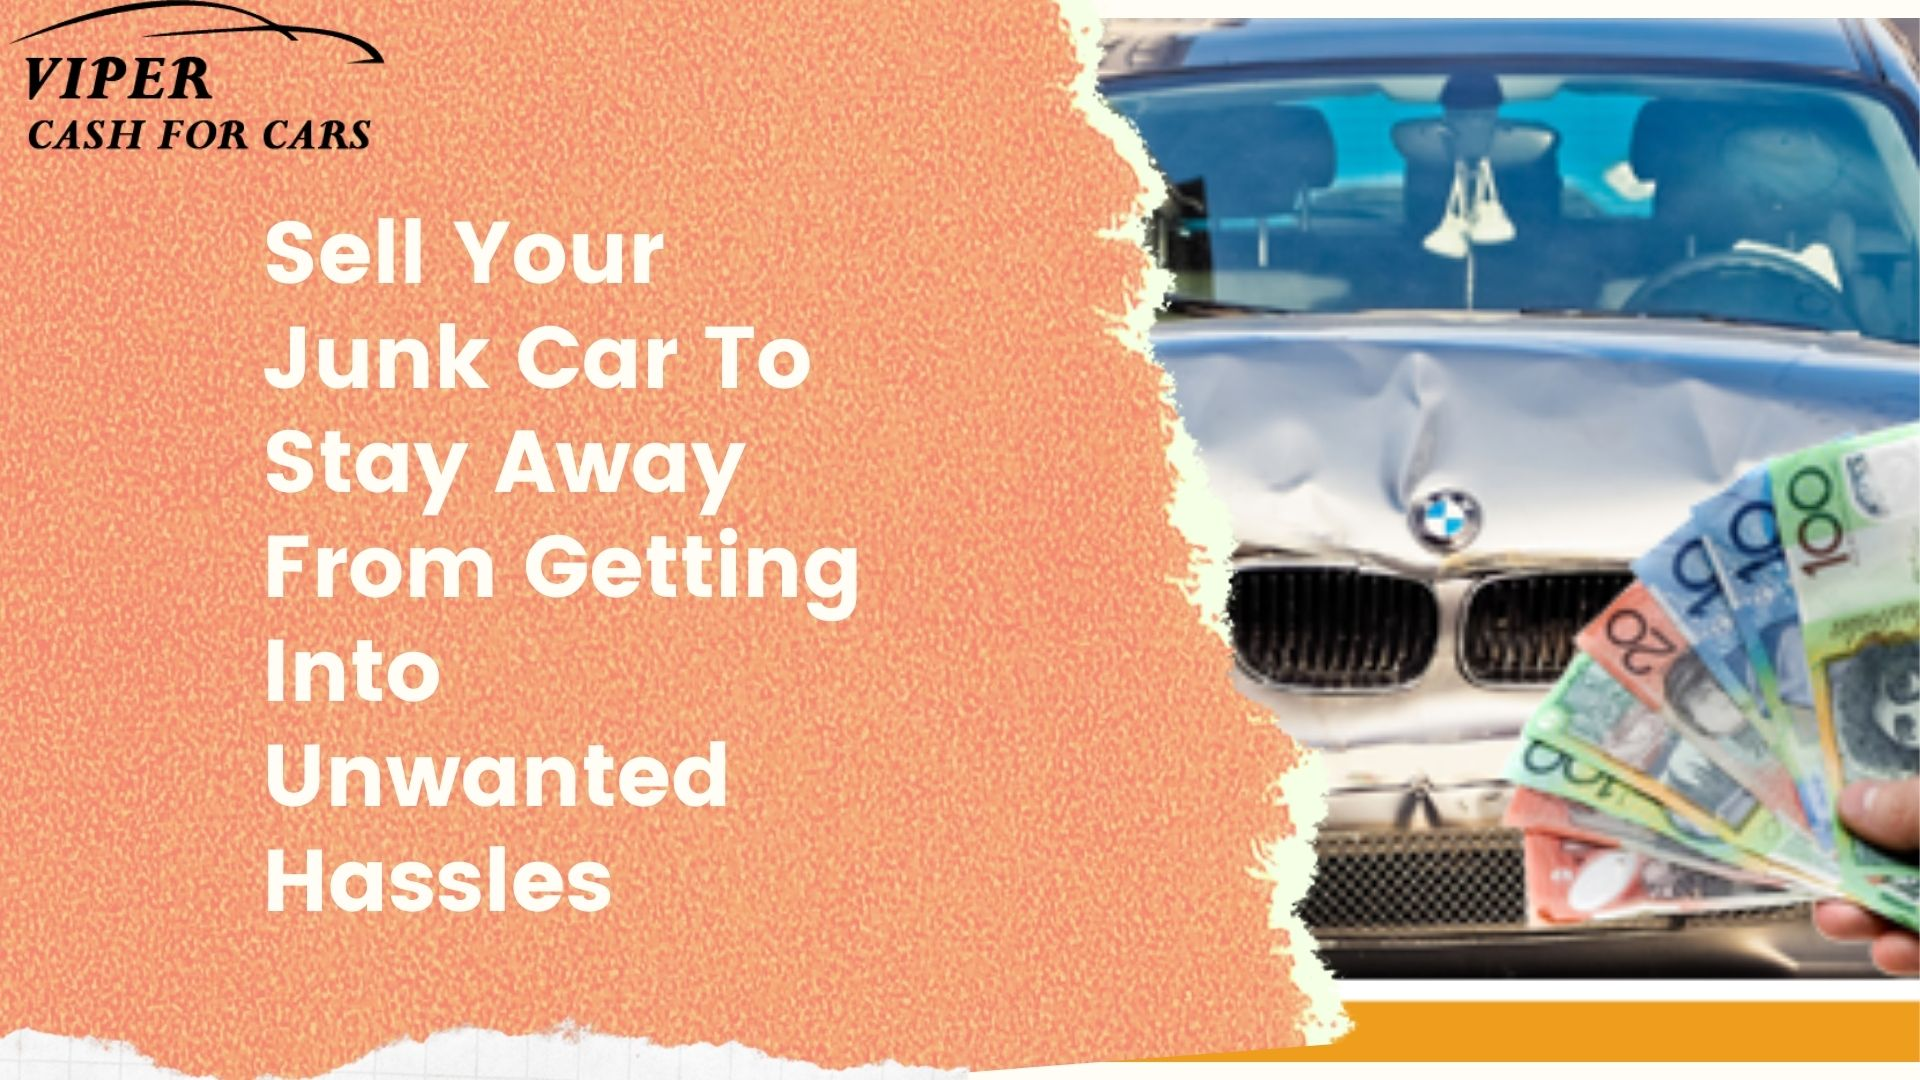 Sell Your Junk Car To Stay Away From Getting Into Unwanted Hassles